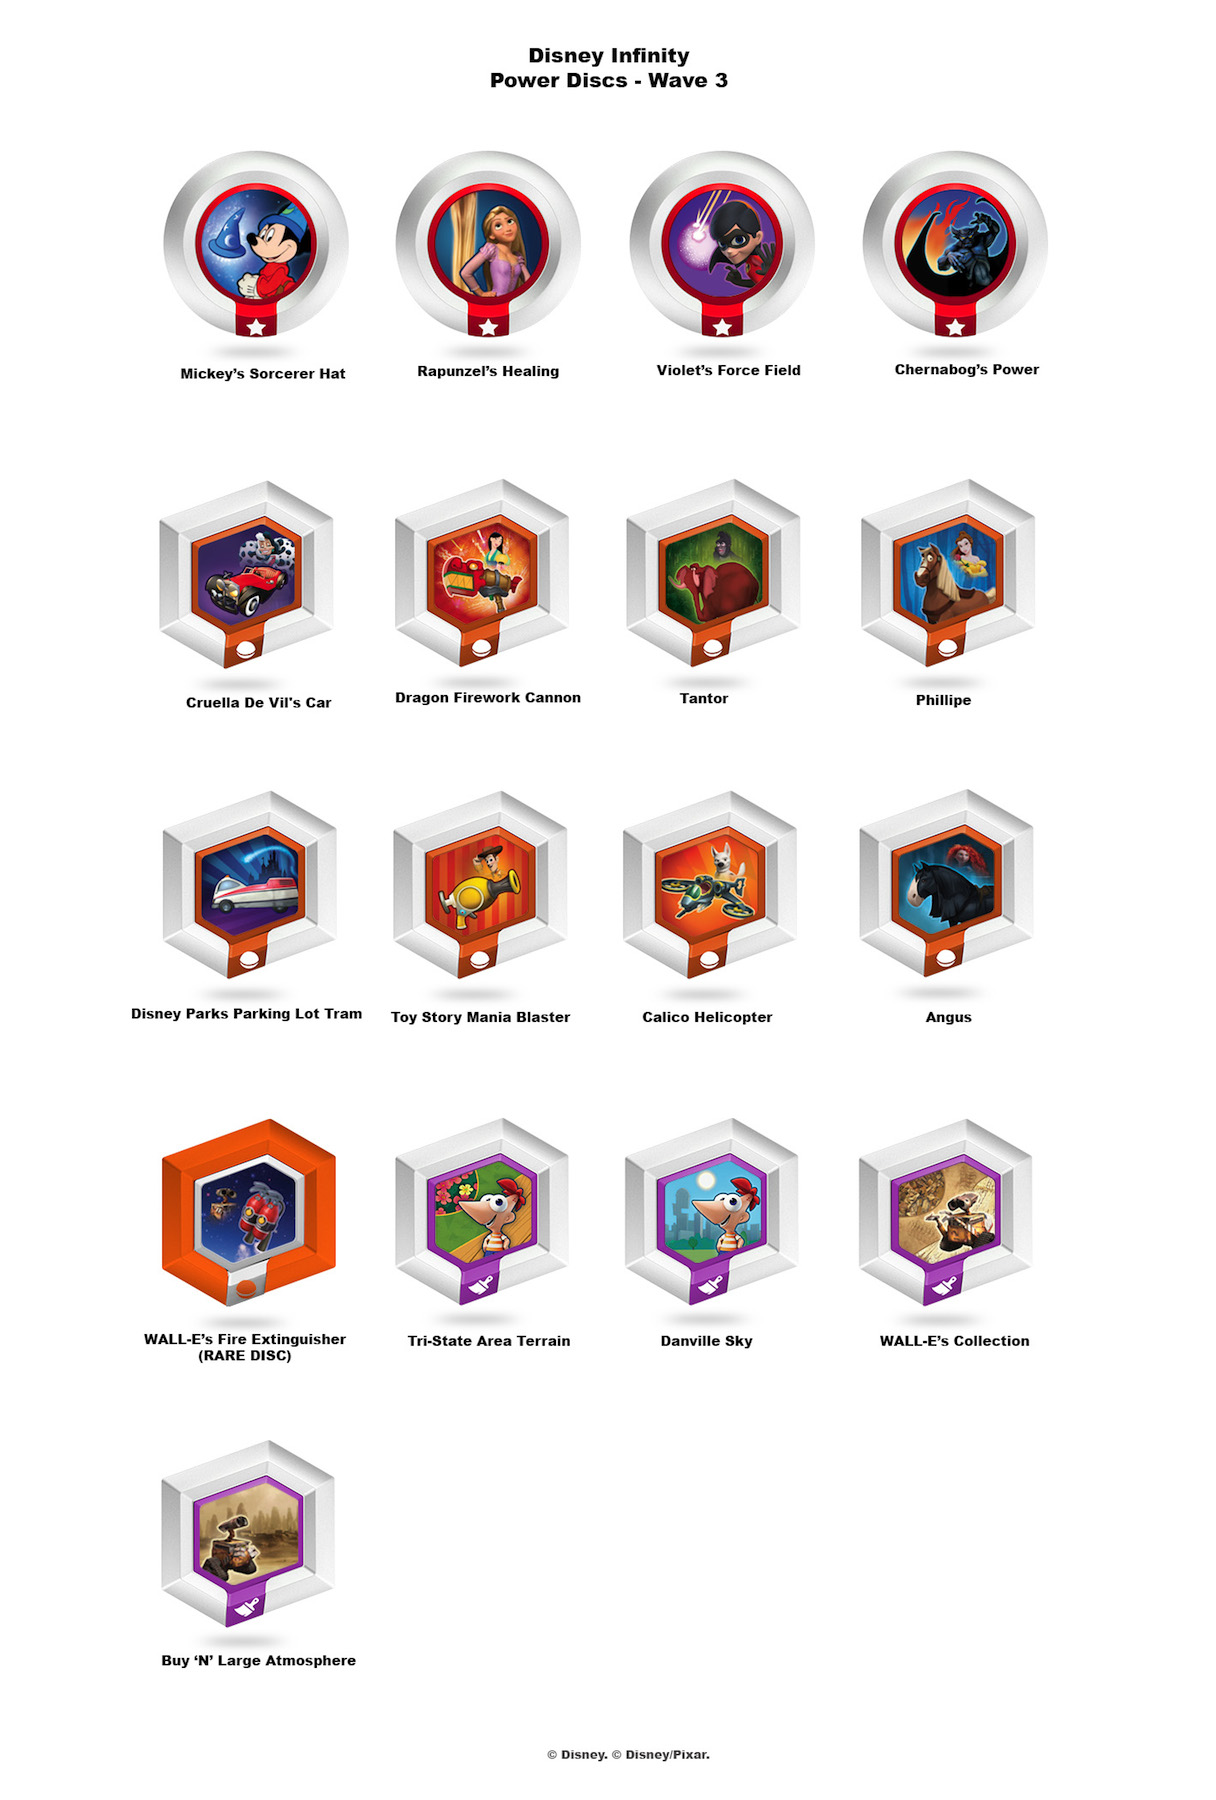 Disney Infinity Wave 3 Power Discs